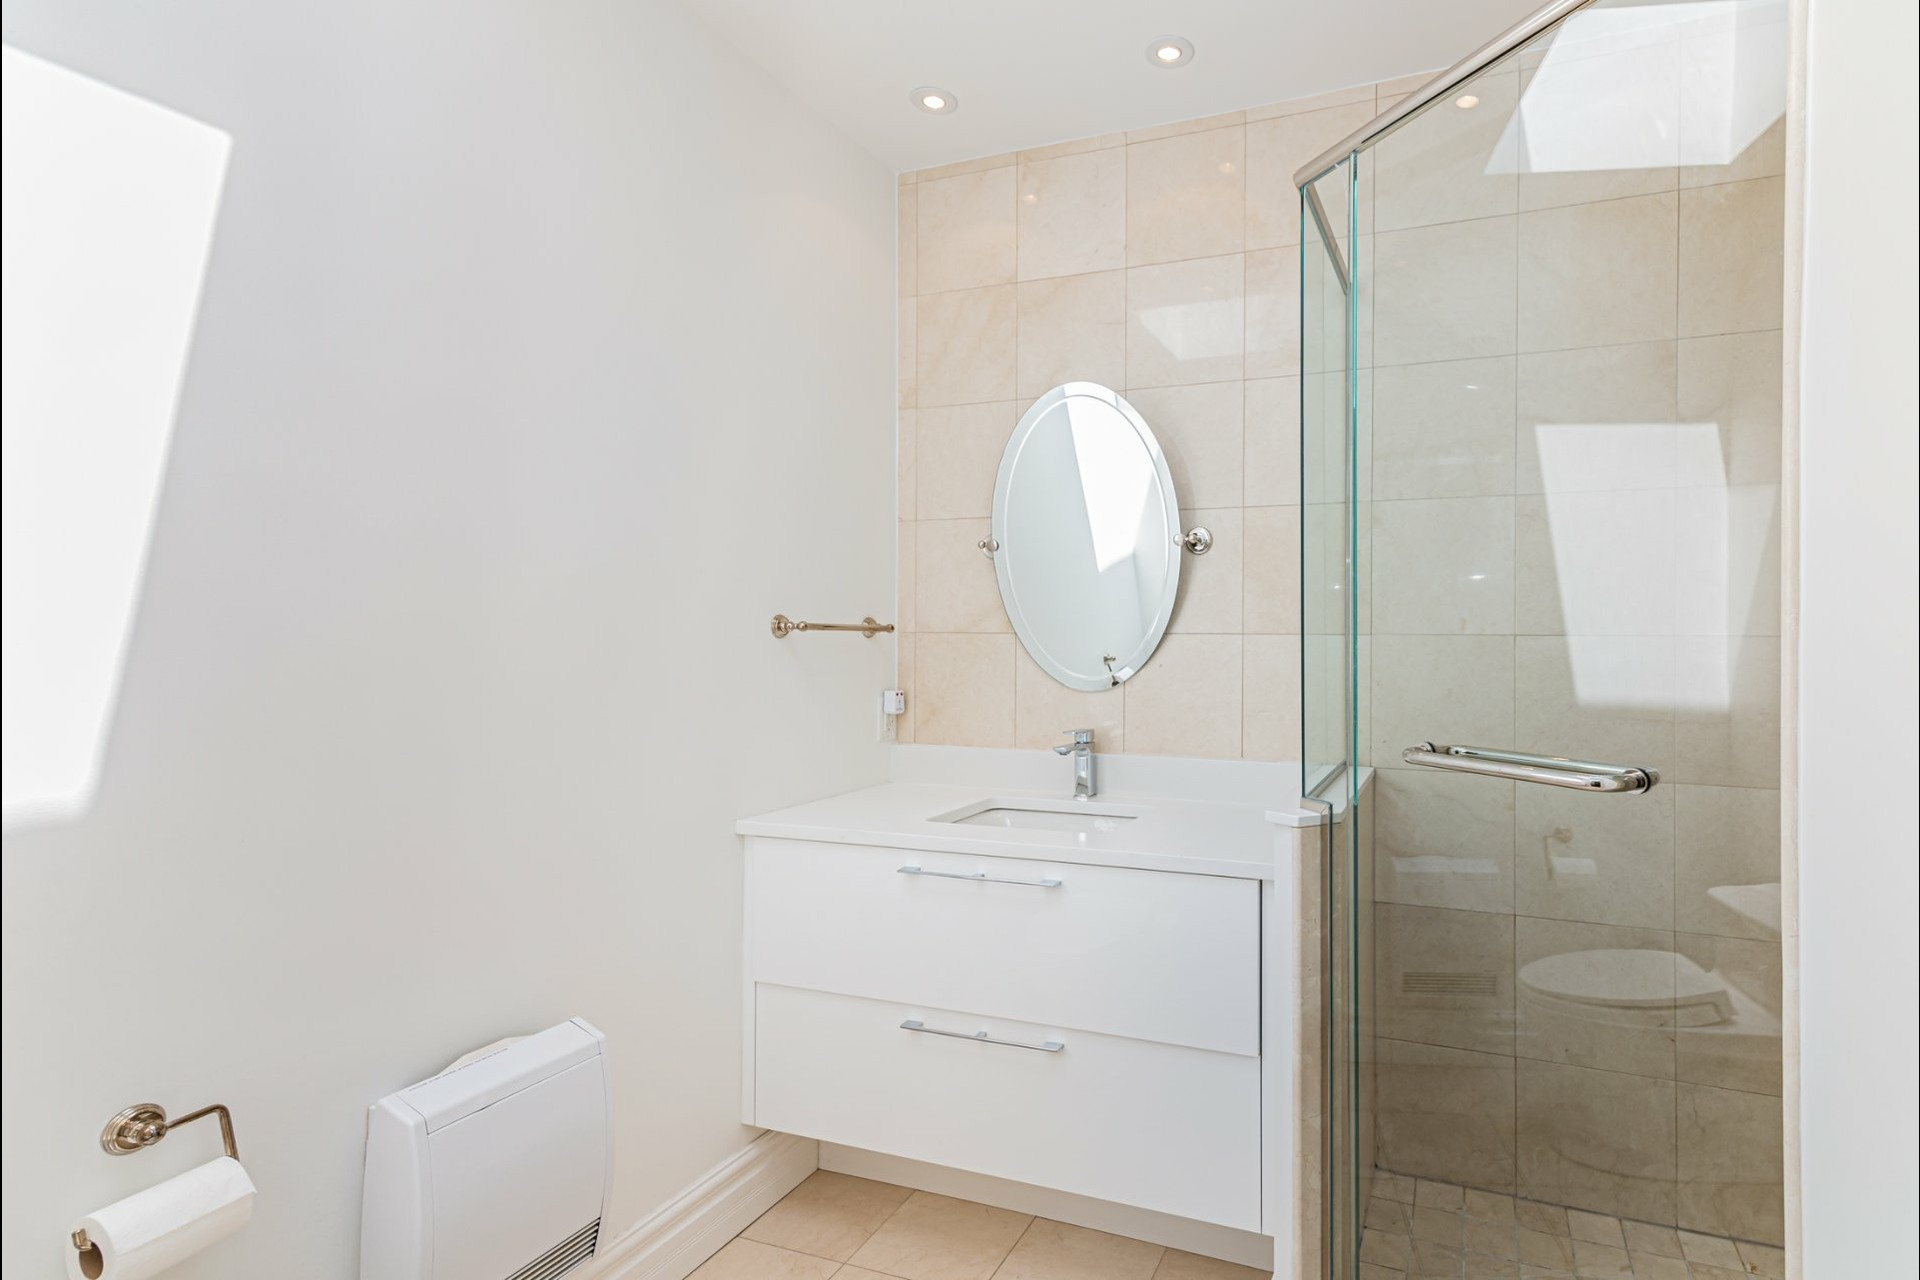 image 21 - House For rent Westmount - 8 rooms